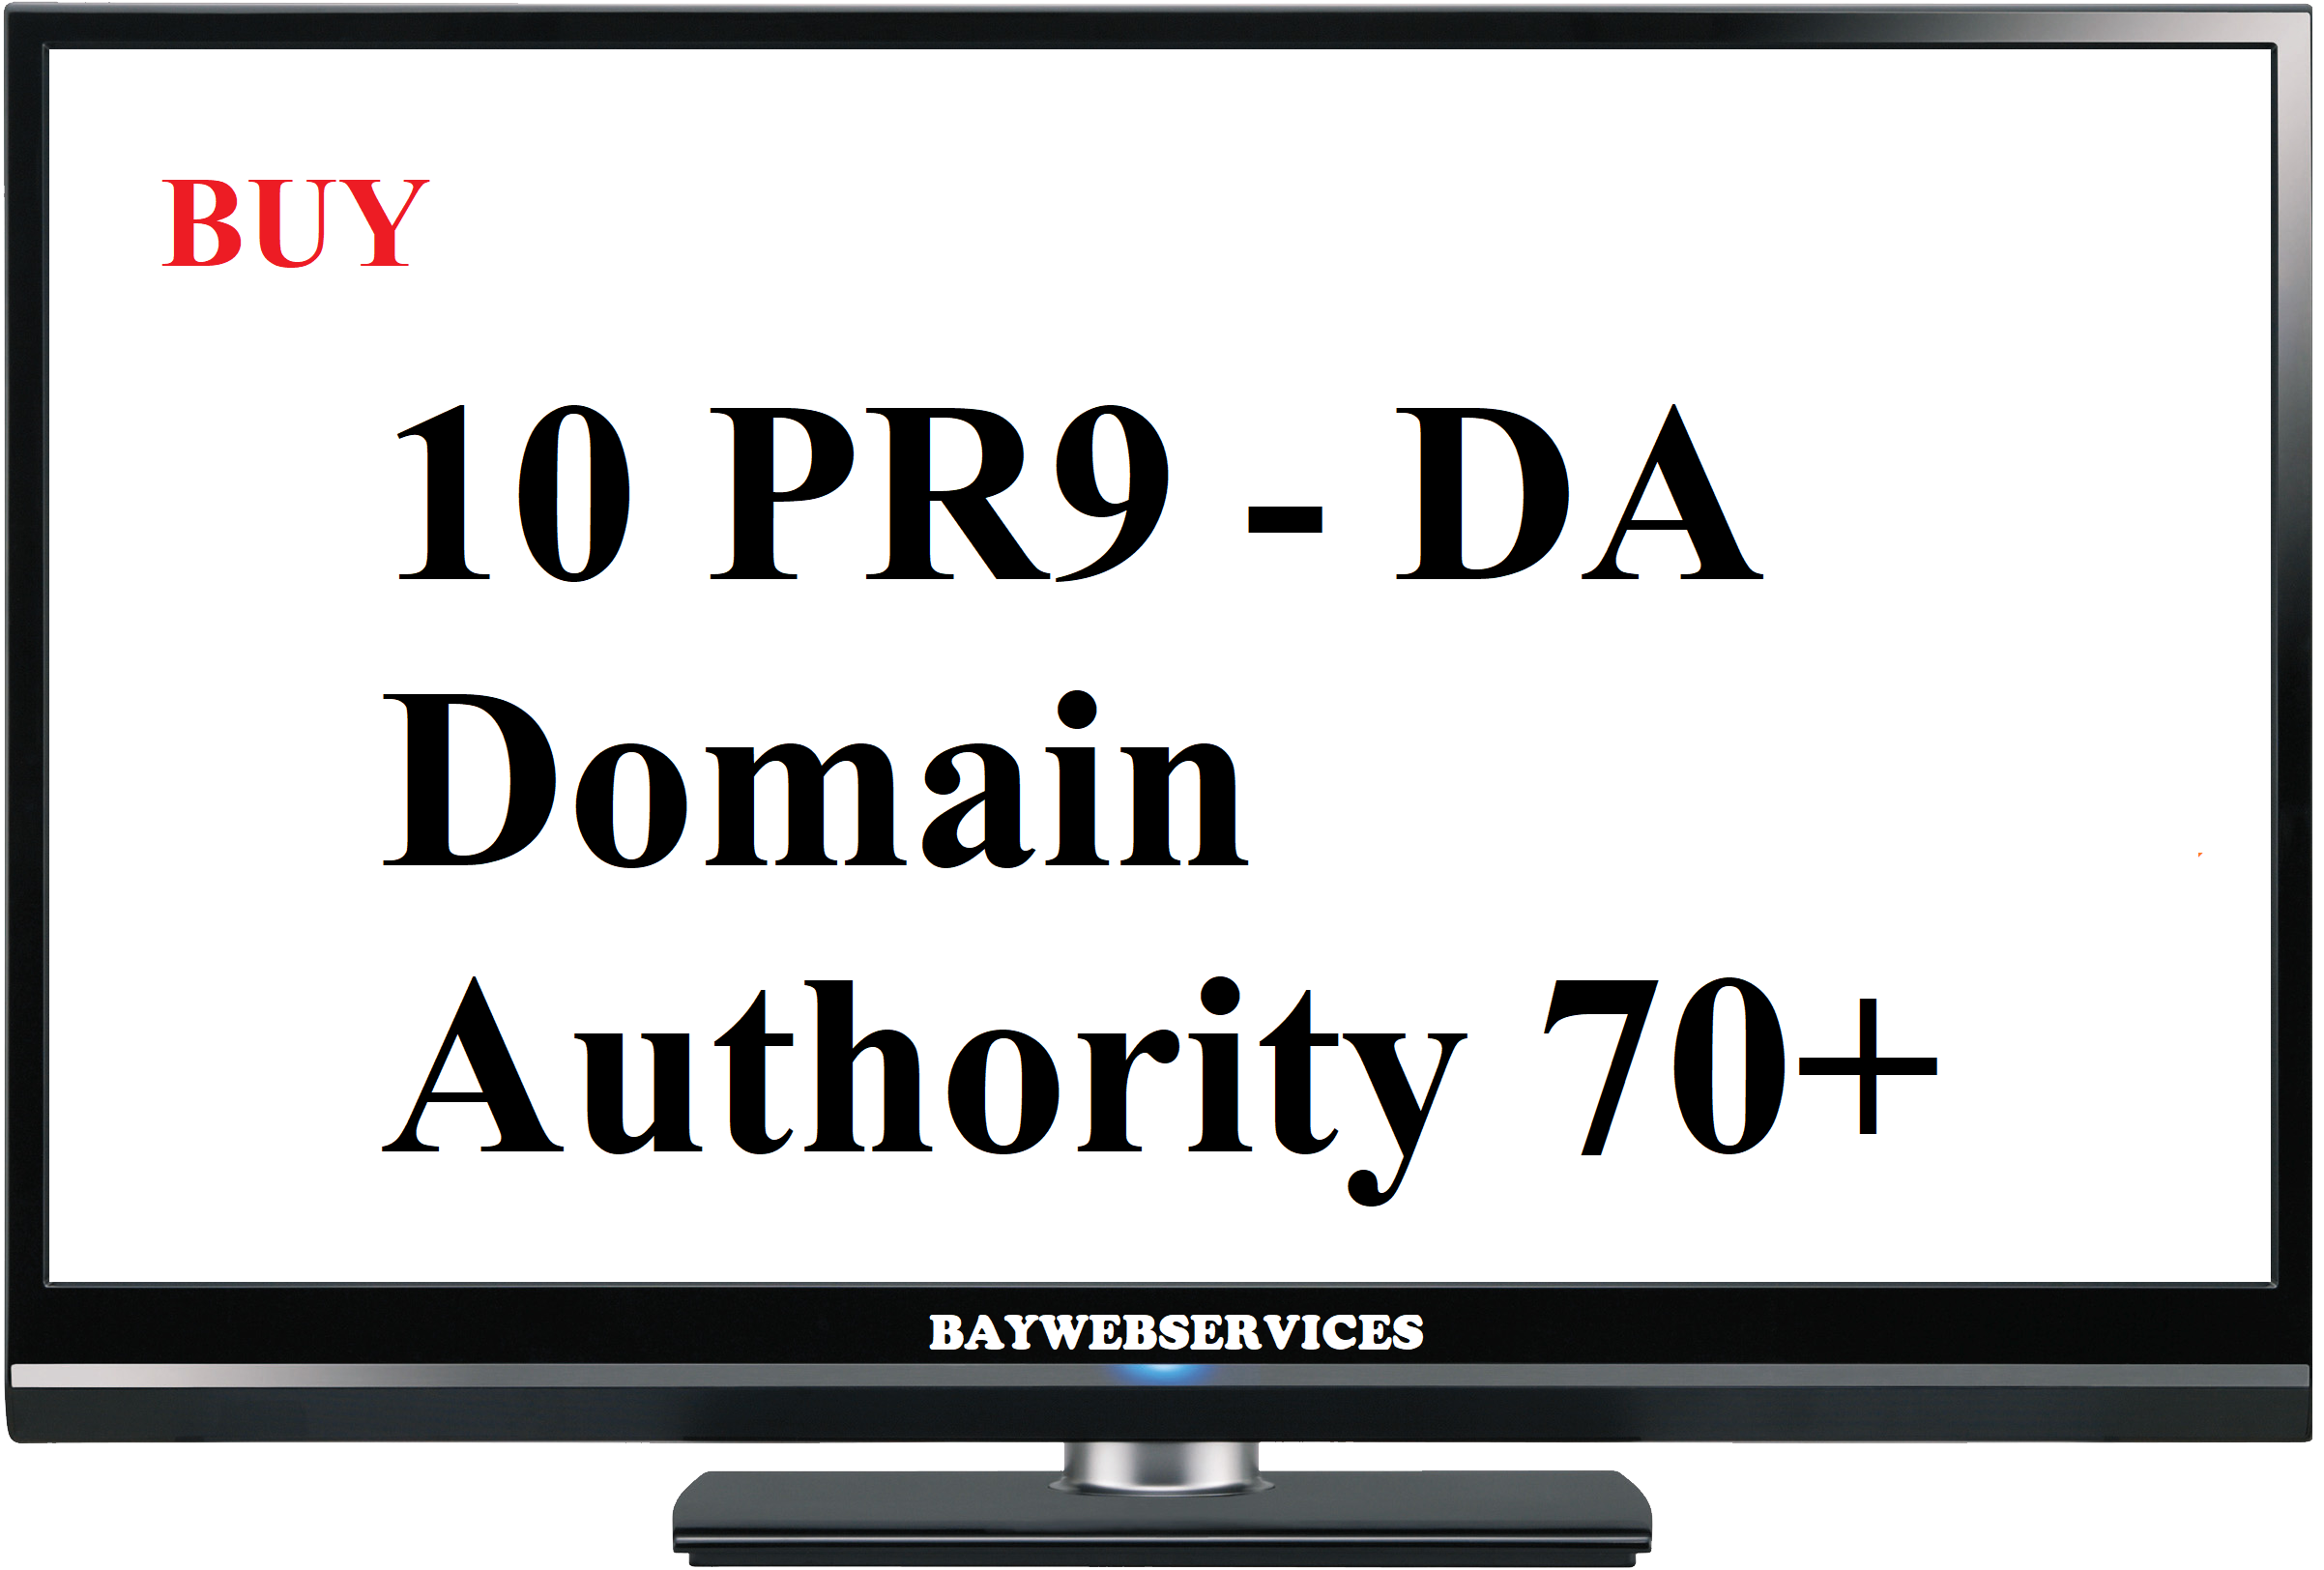 10 PR9 - DA Domain Authority 70+ Backlinks